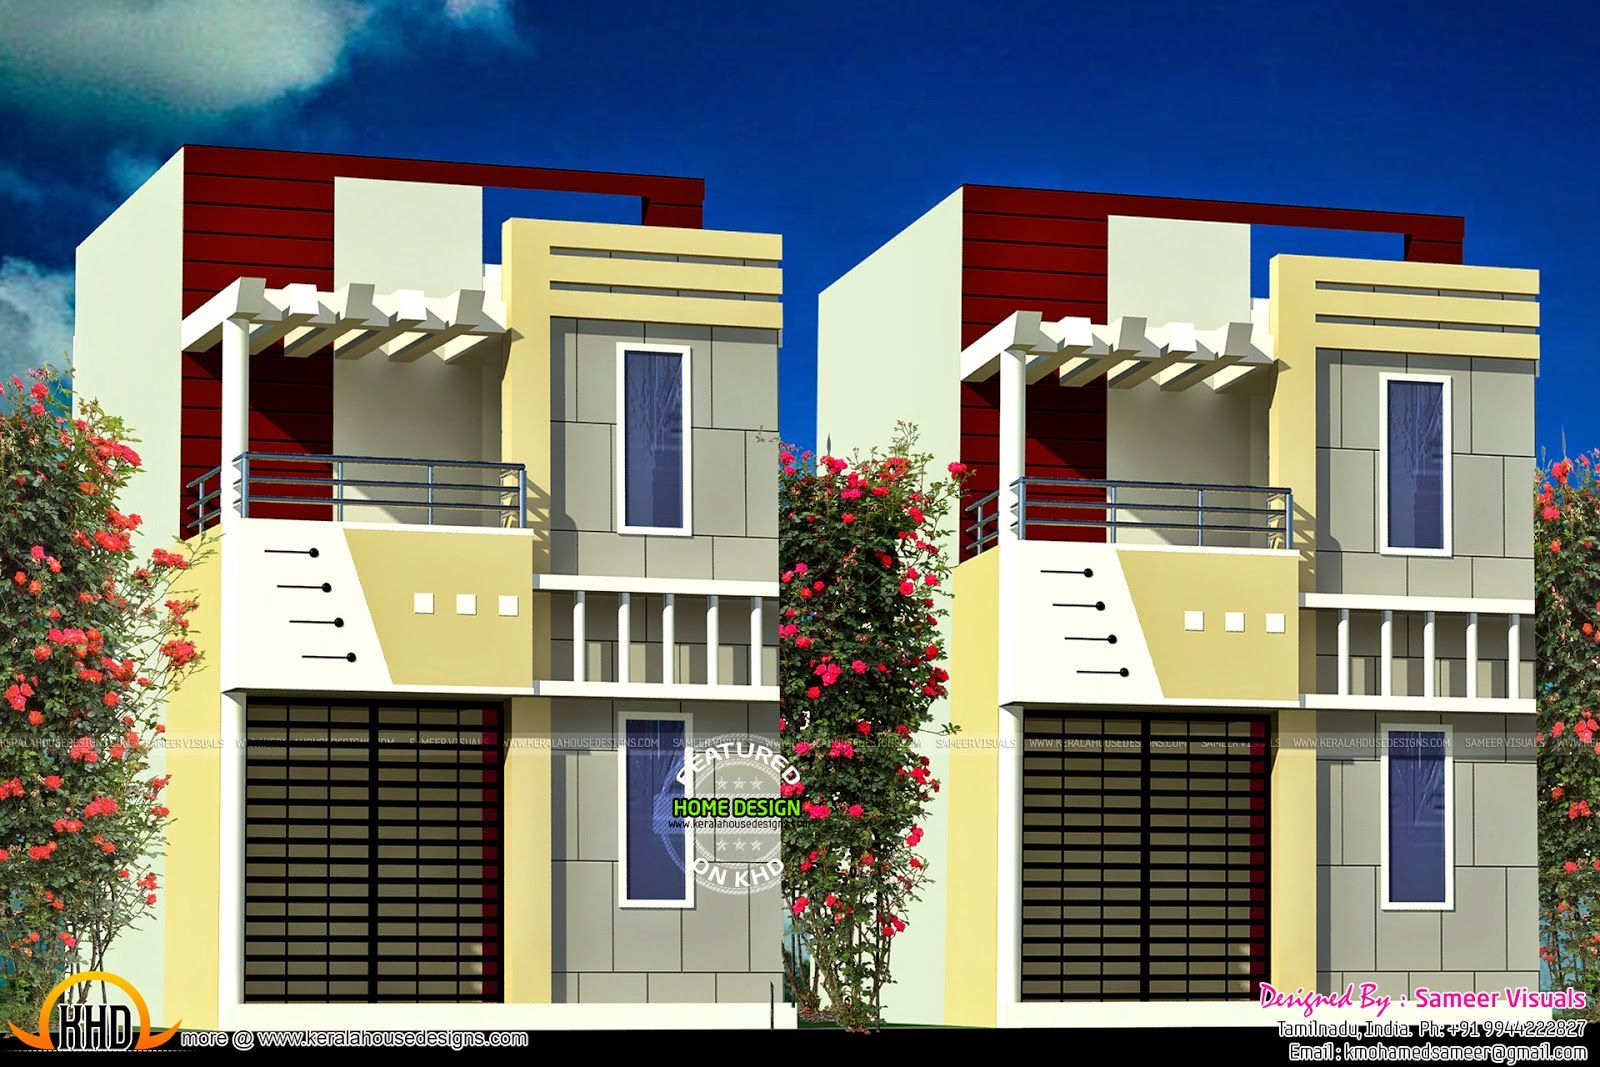 750 sq ft house plans in indian house plans for 750 sq ft house